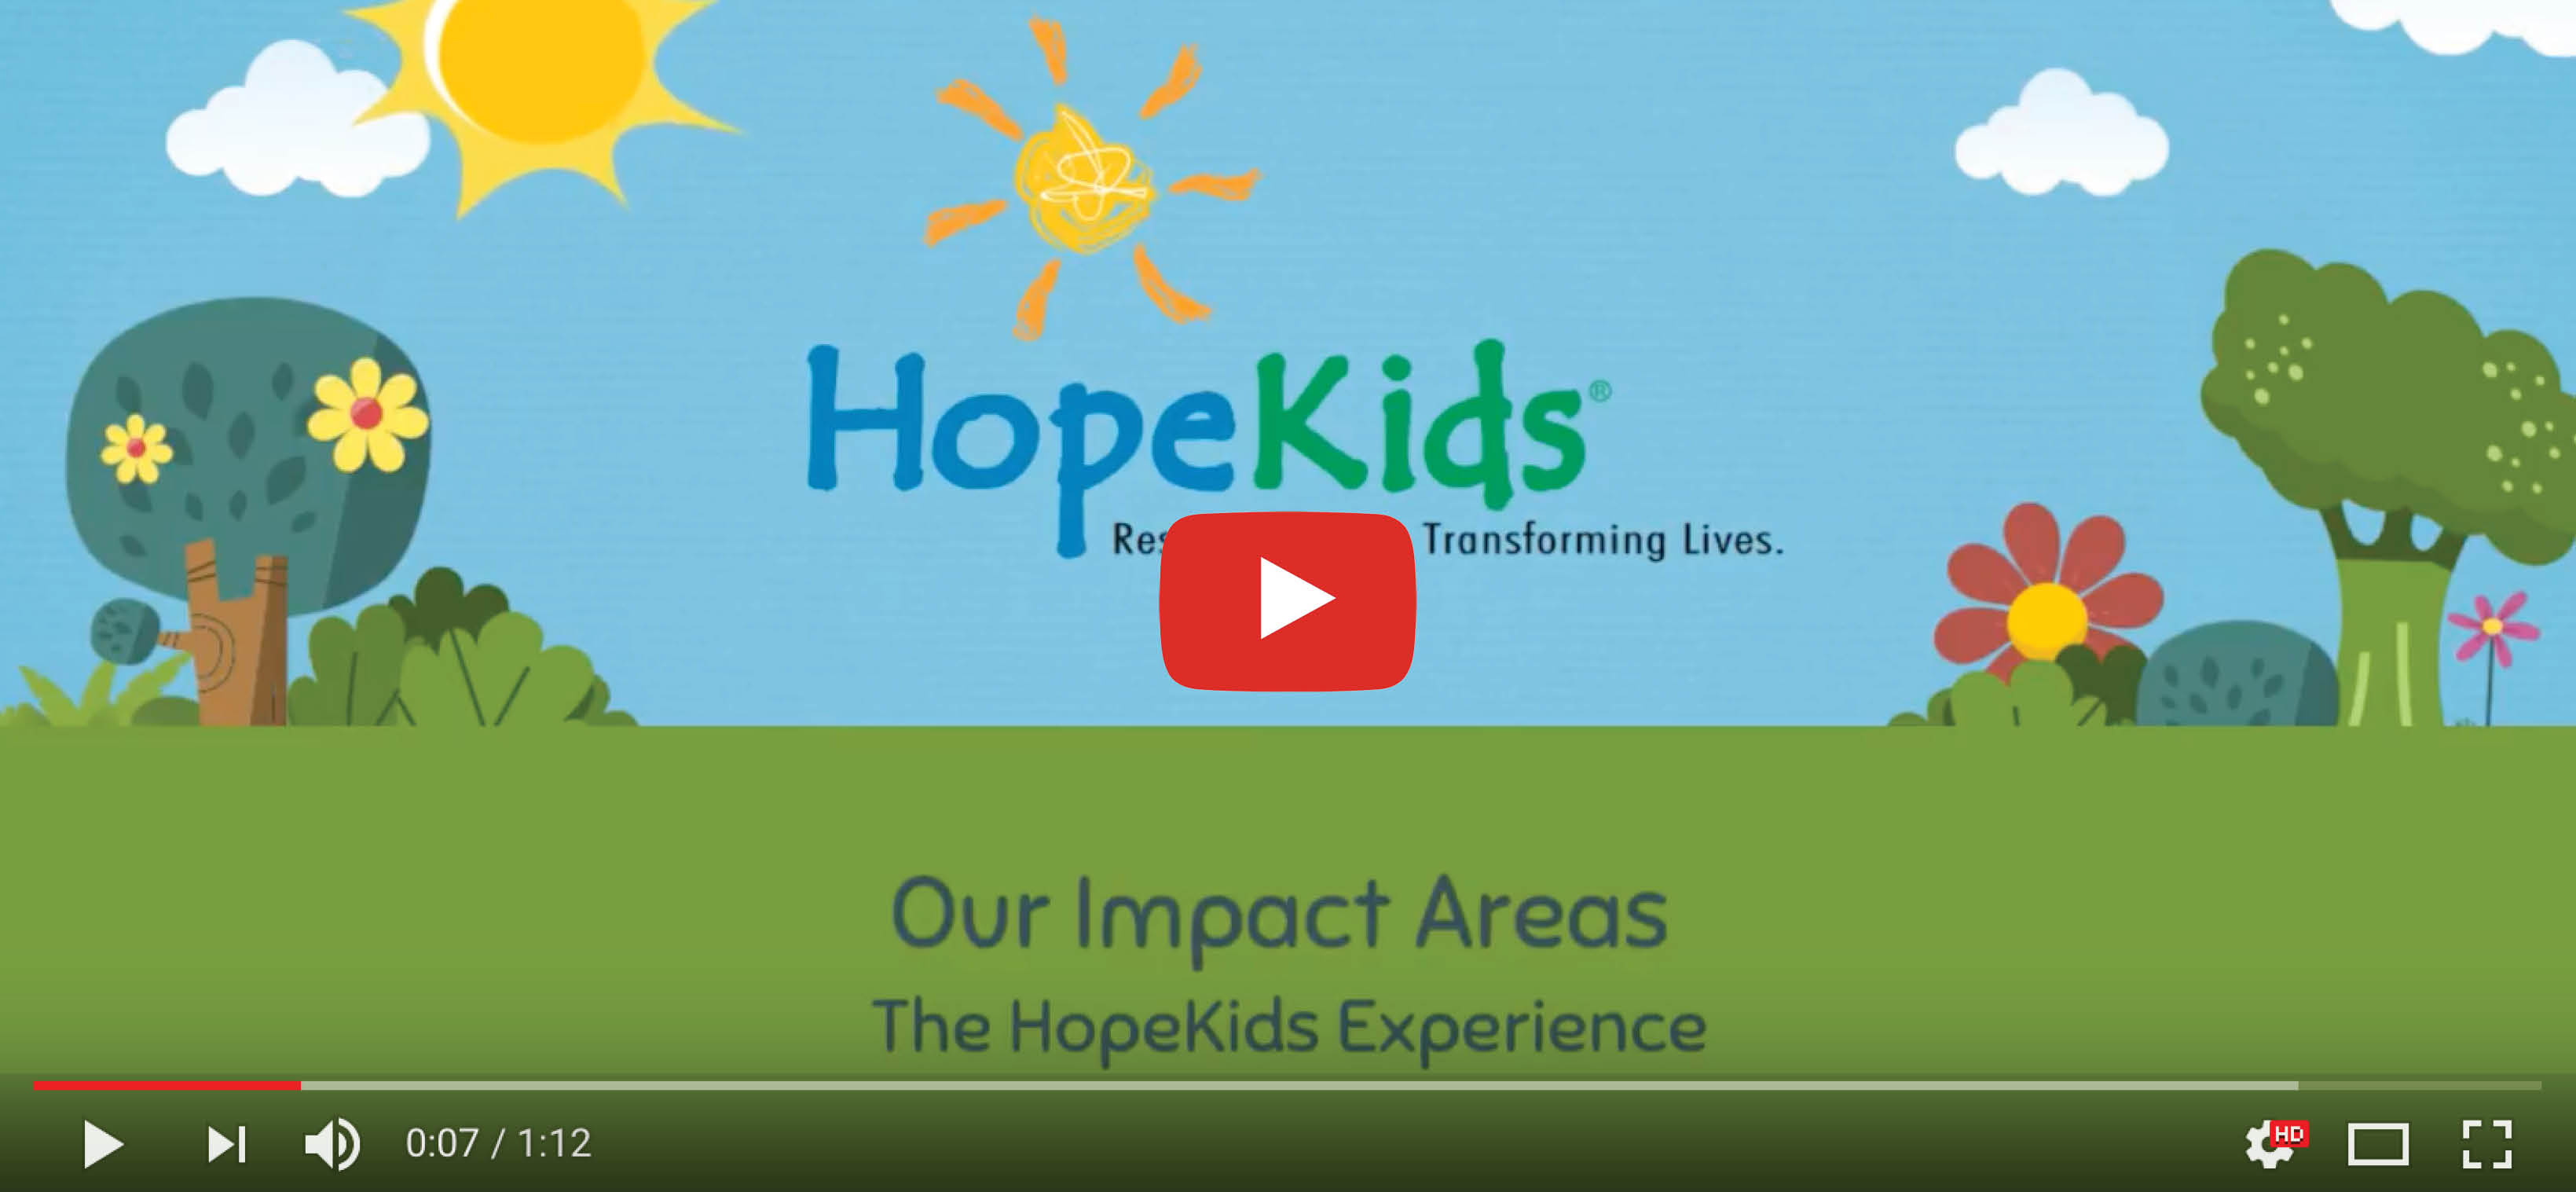 HopeKids-Impact-Areas